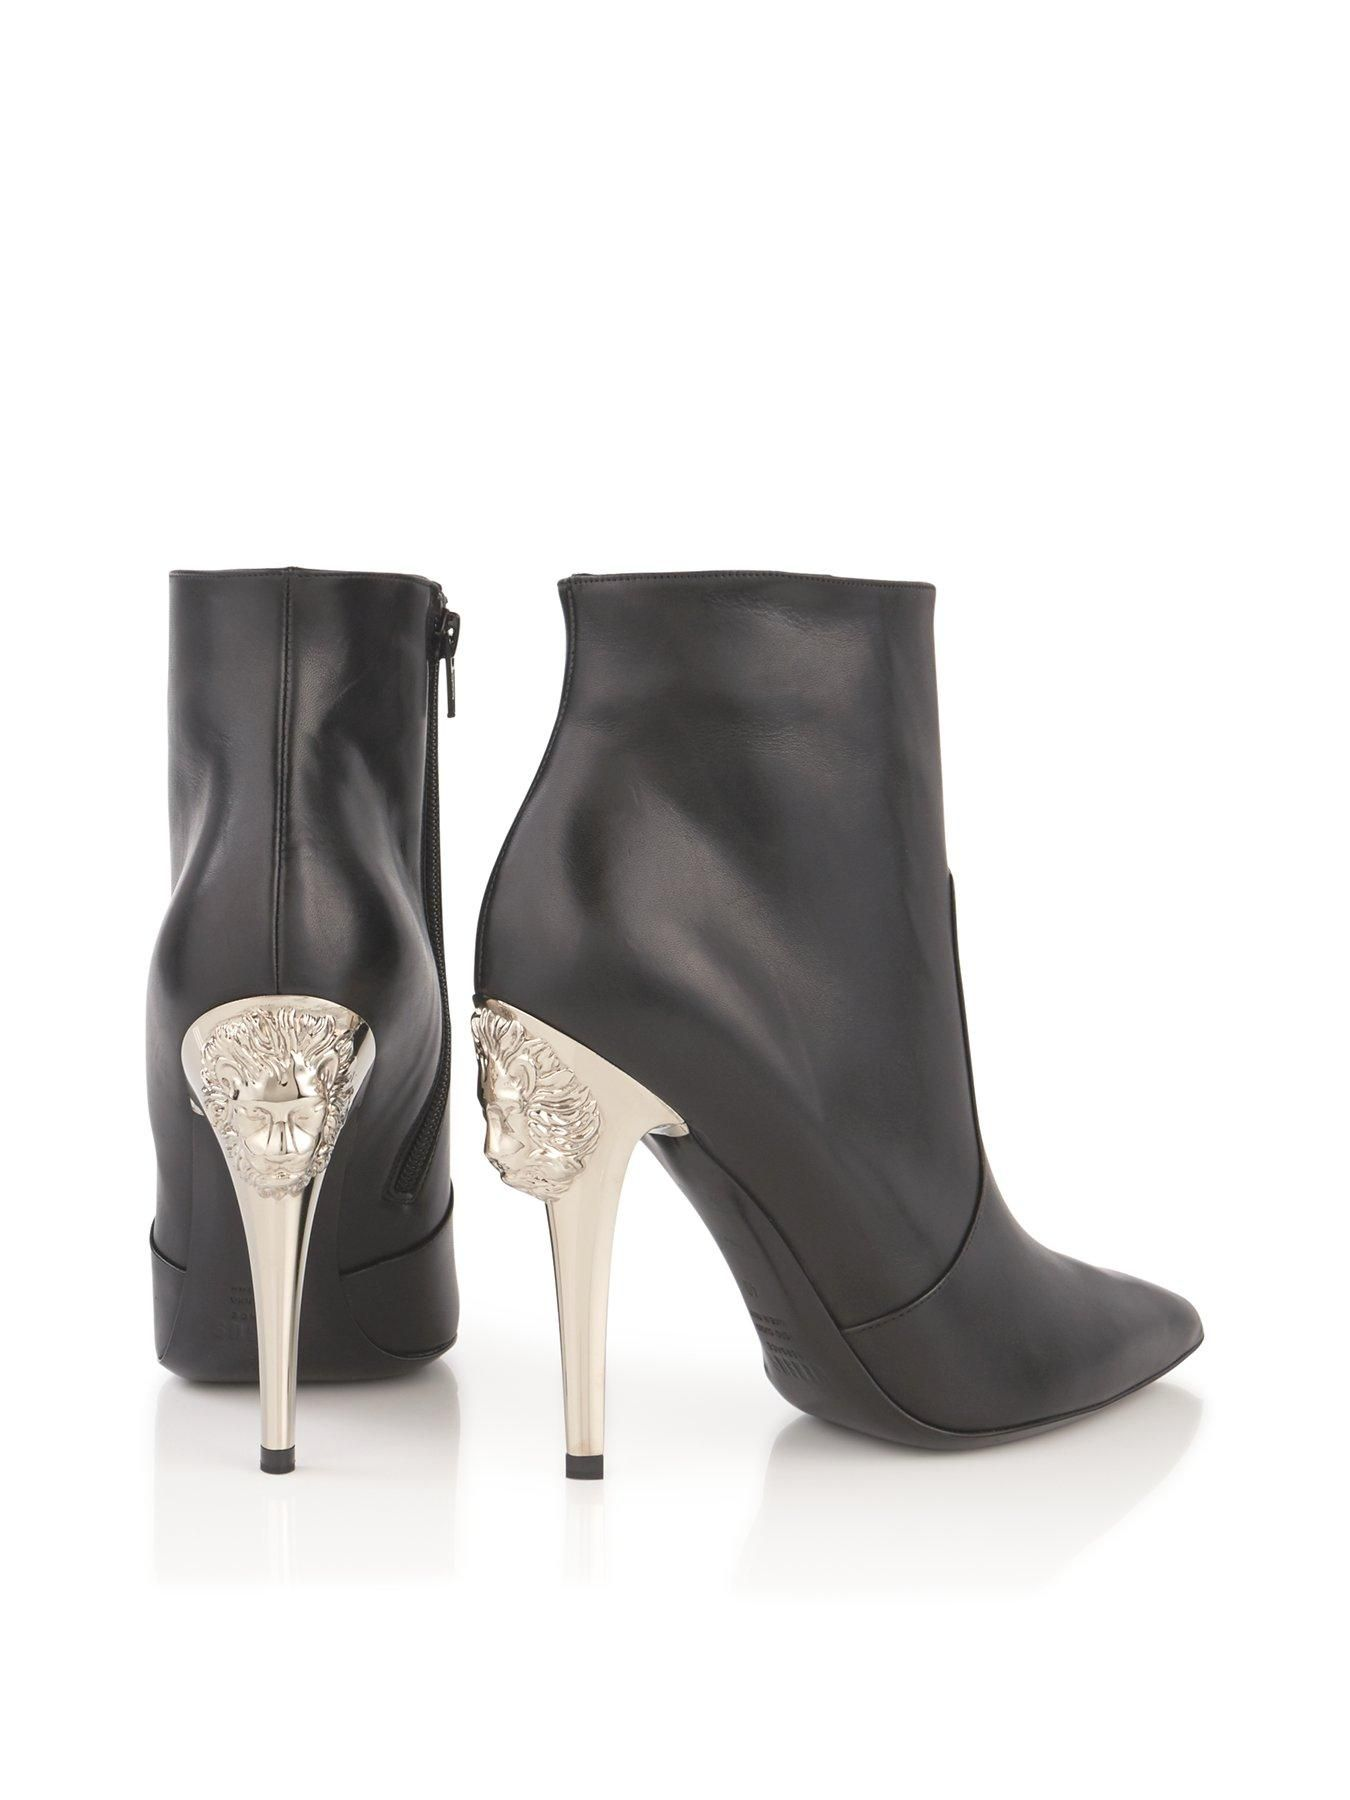 Versace Suede Pointed-Toe Ankle Boots